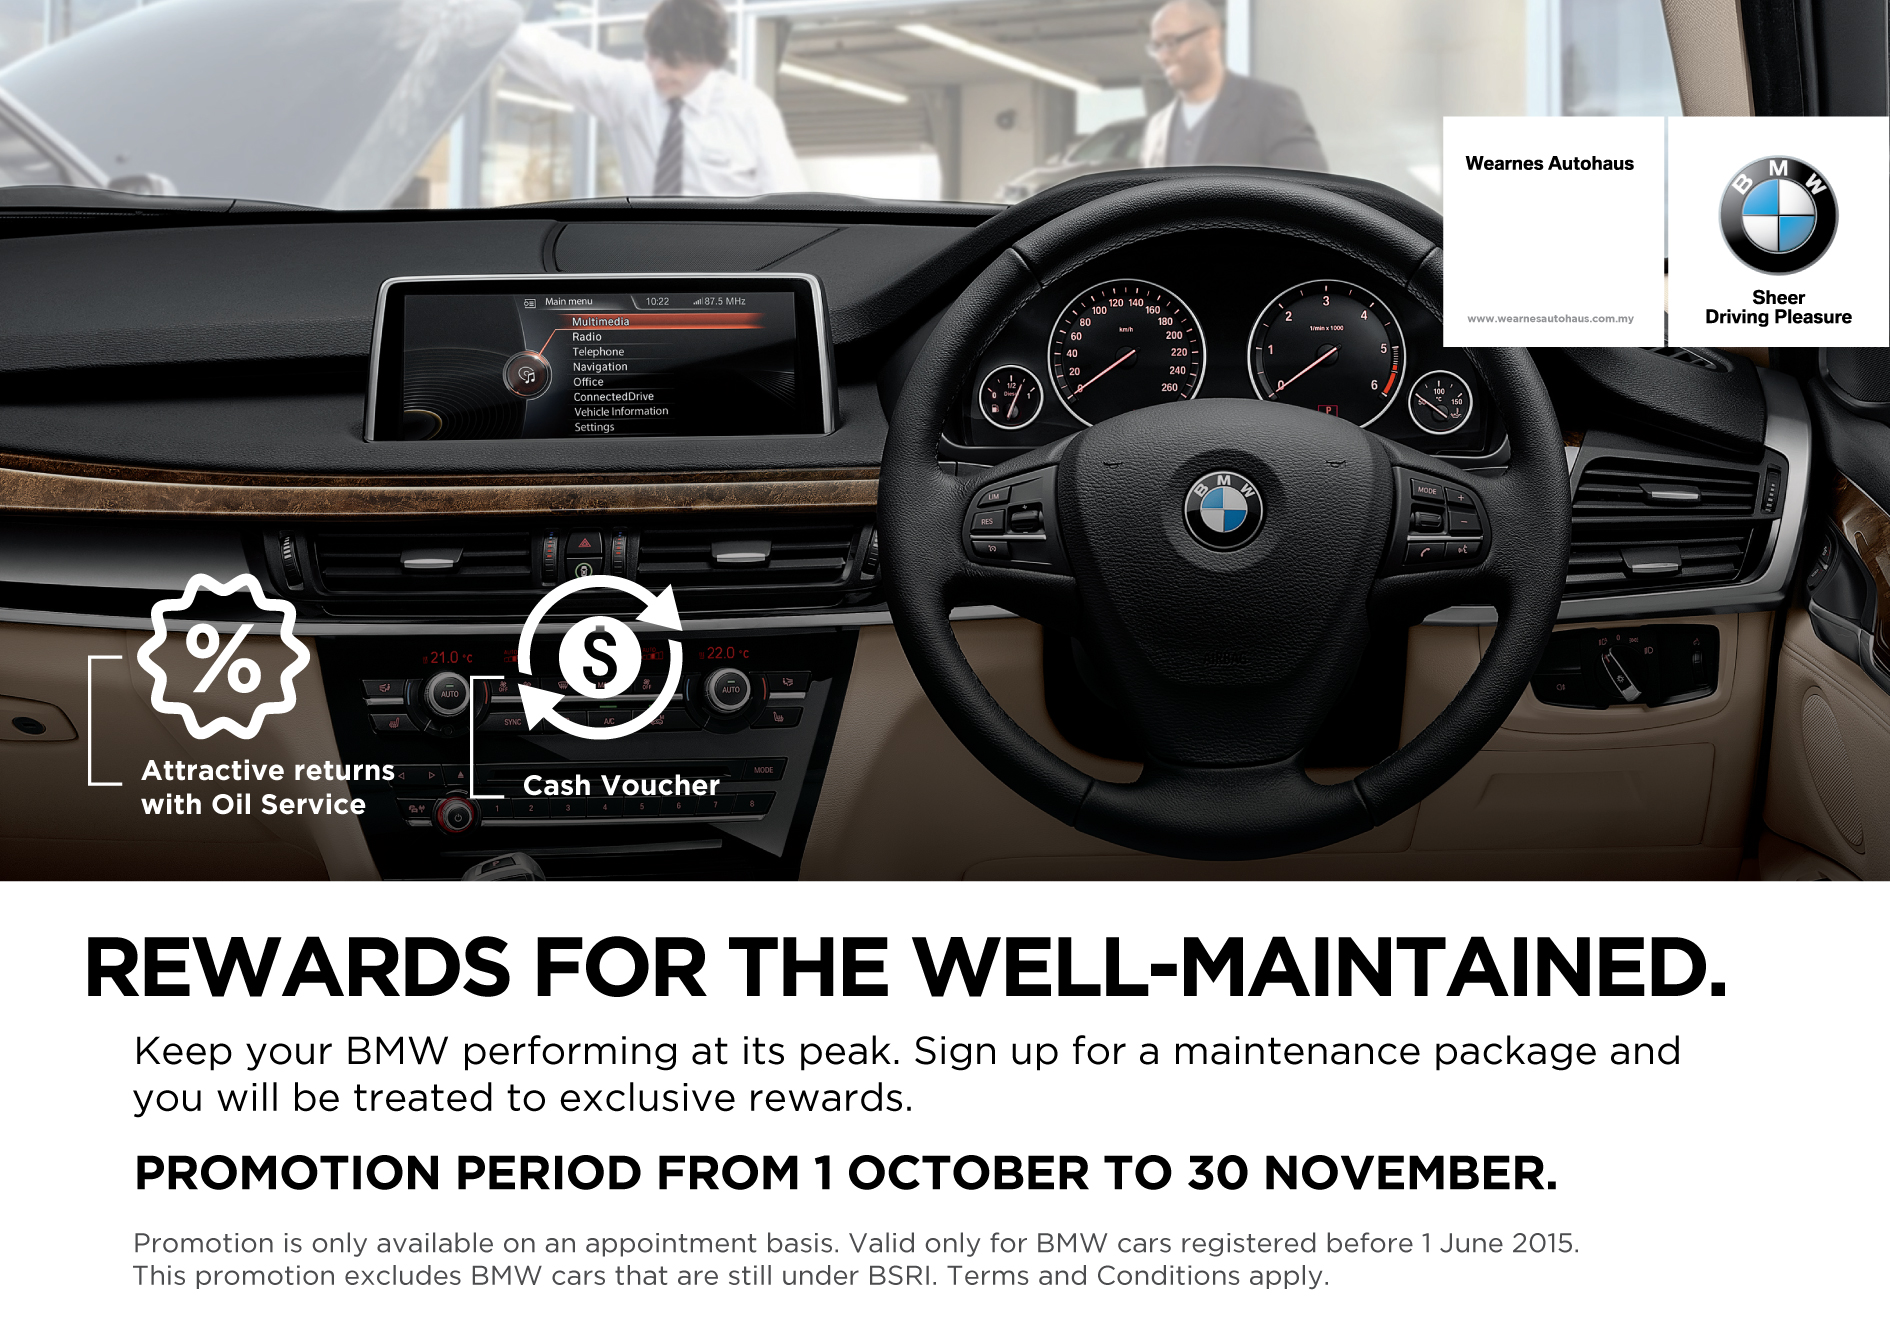 AD Enjoy special offers and rewards when you service your BMW at